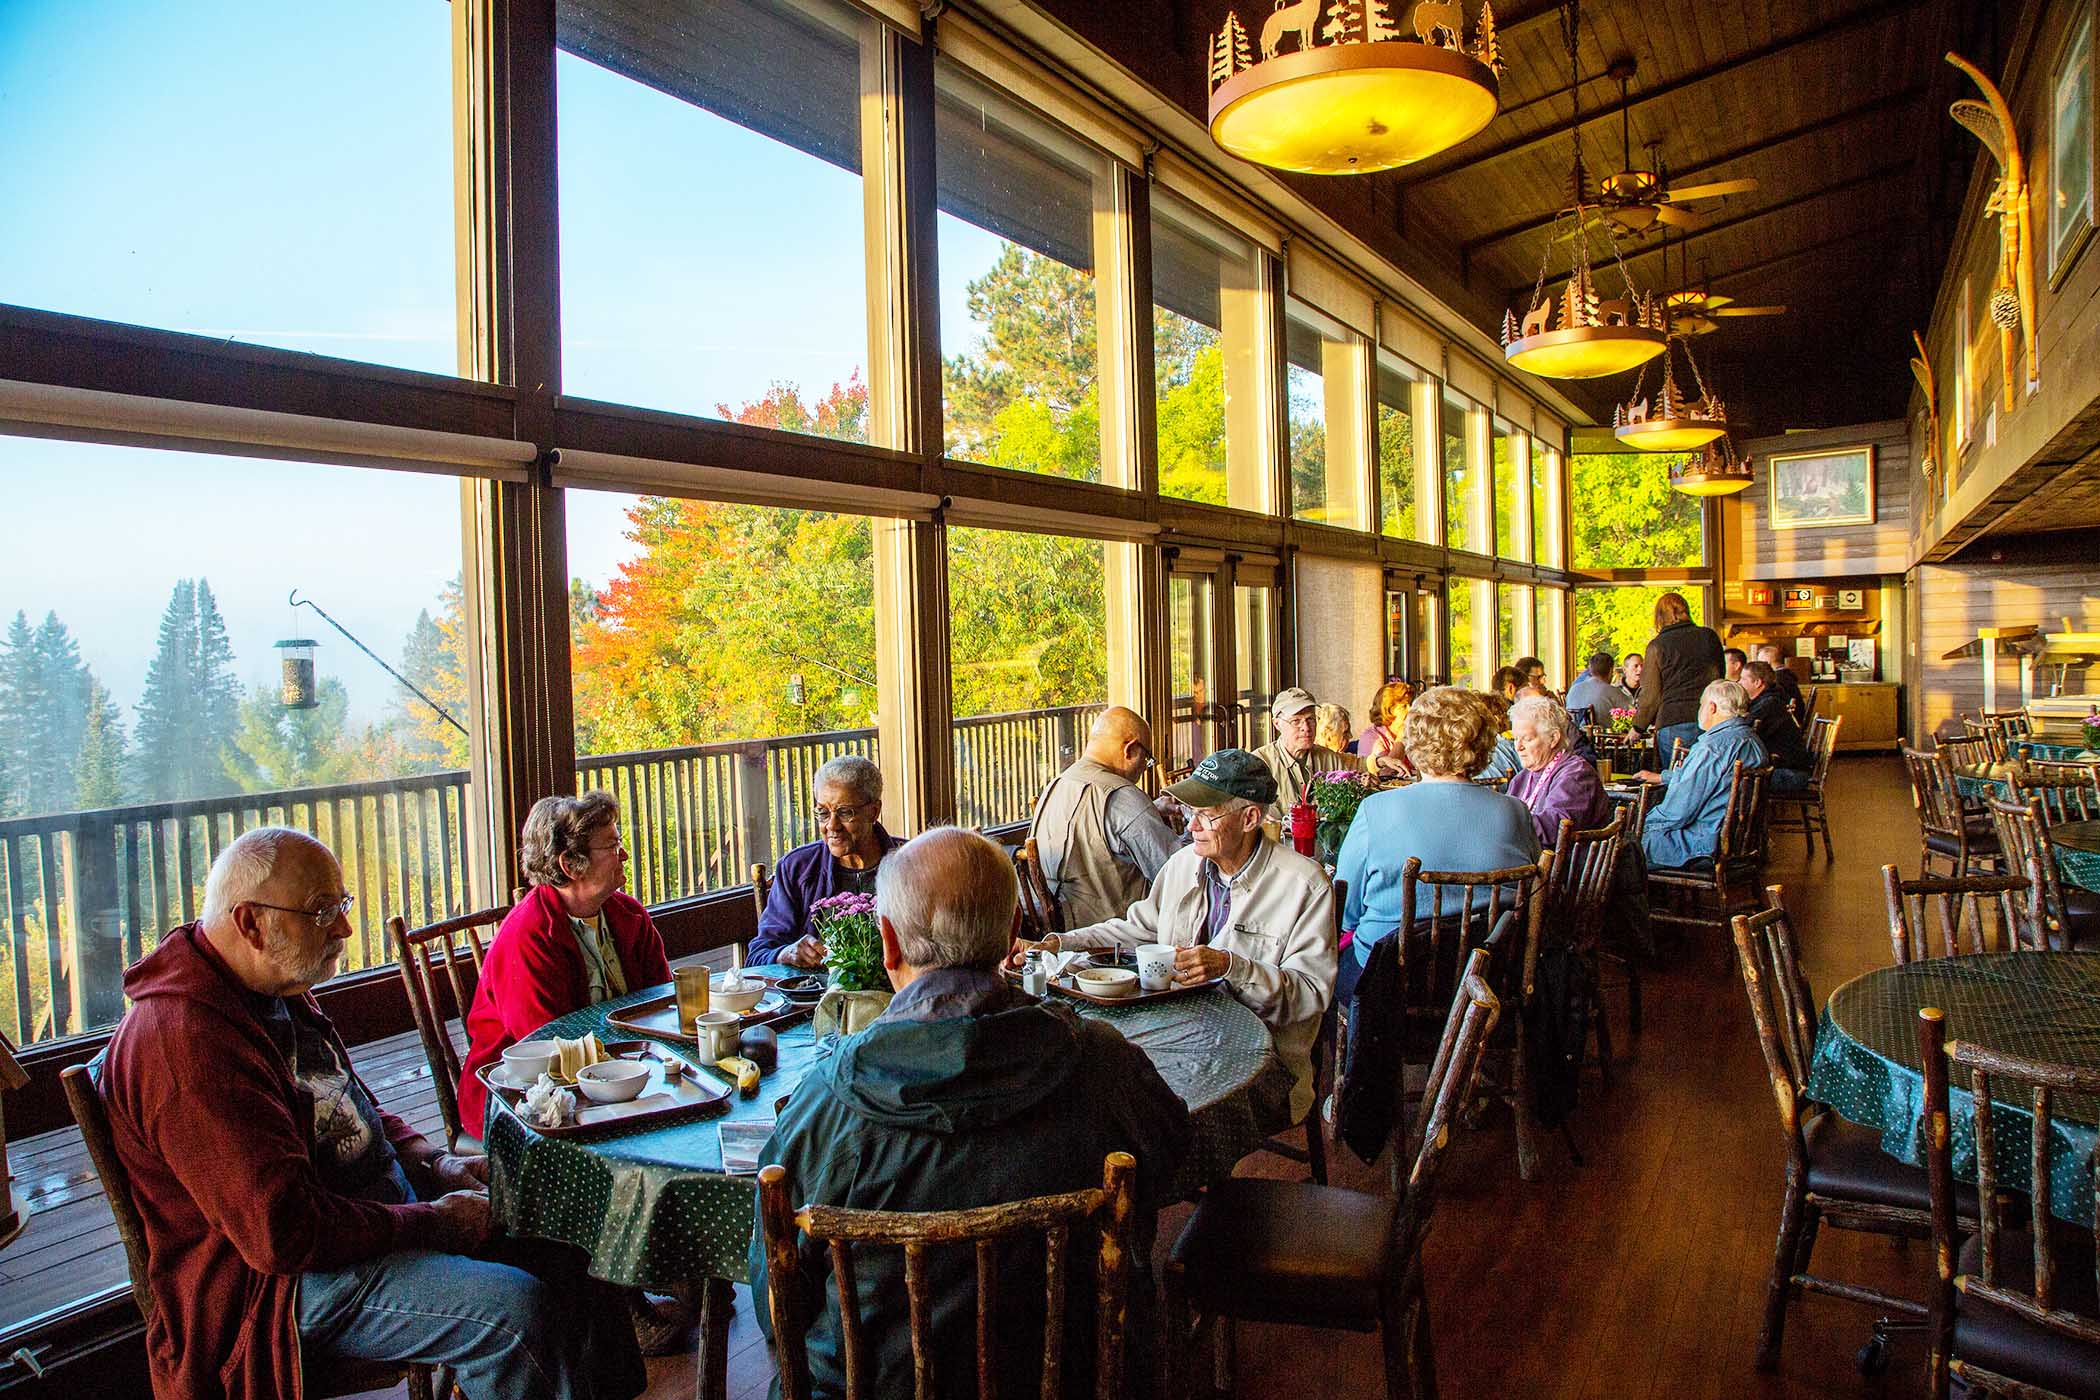 Treehaven Dining Room